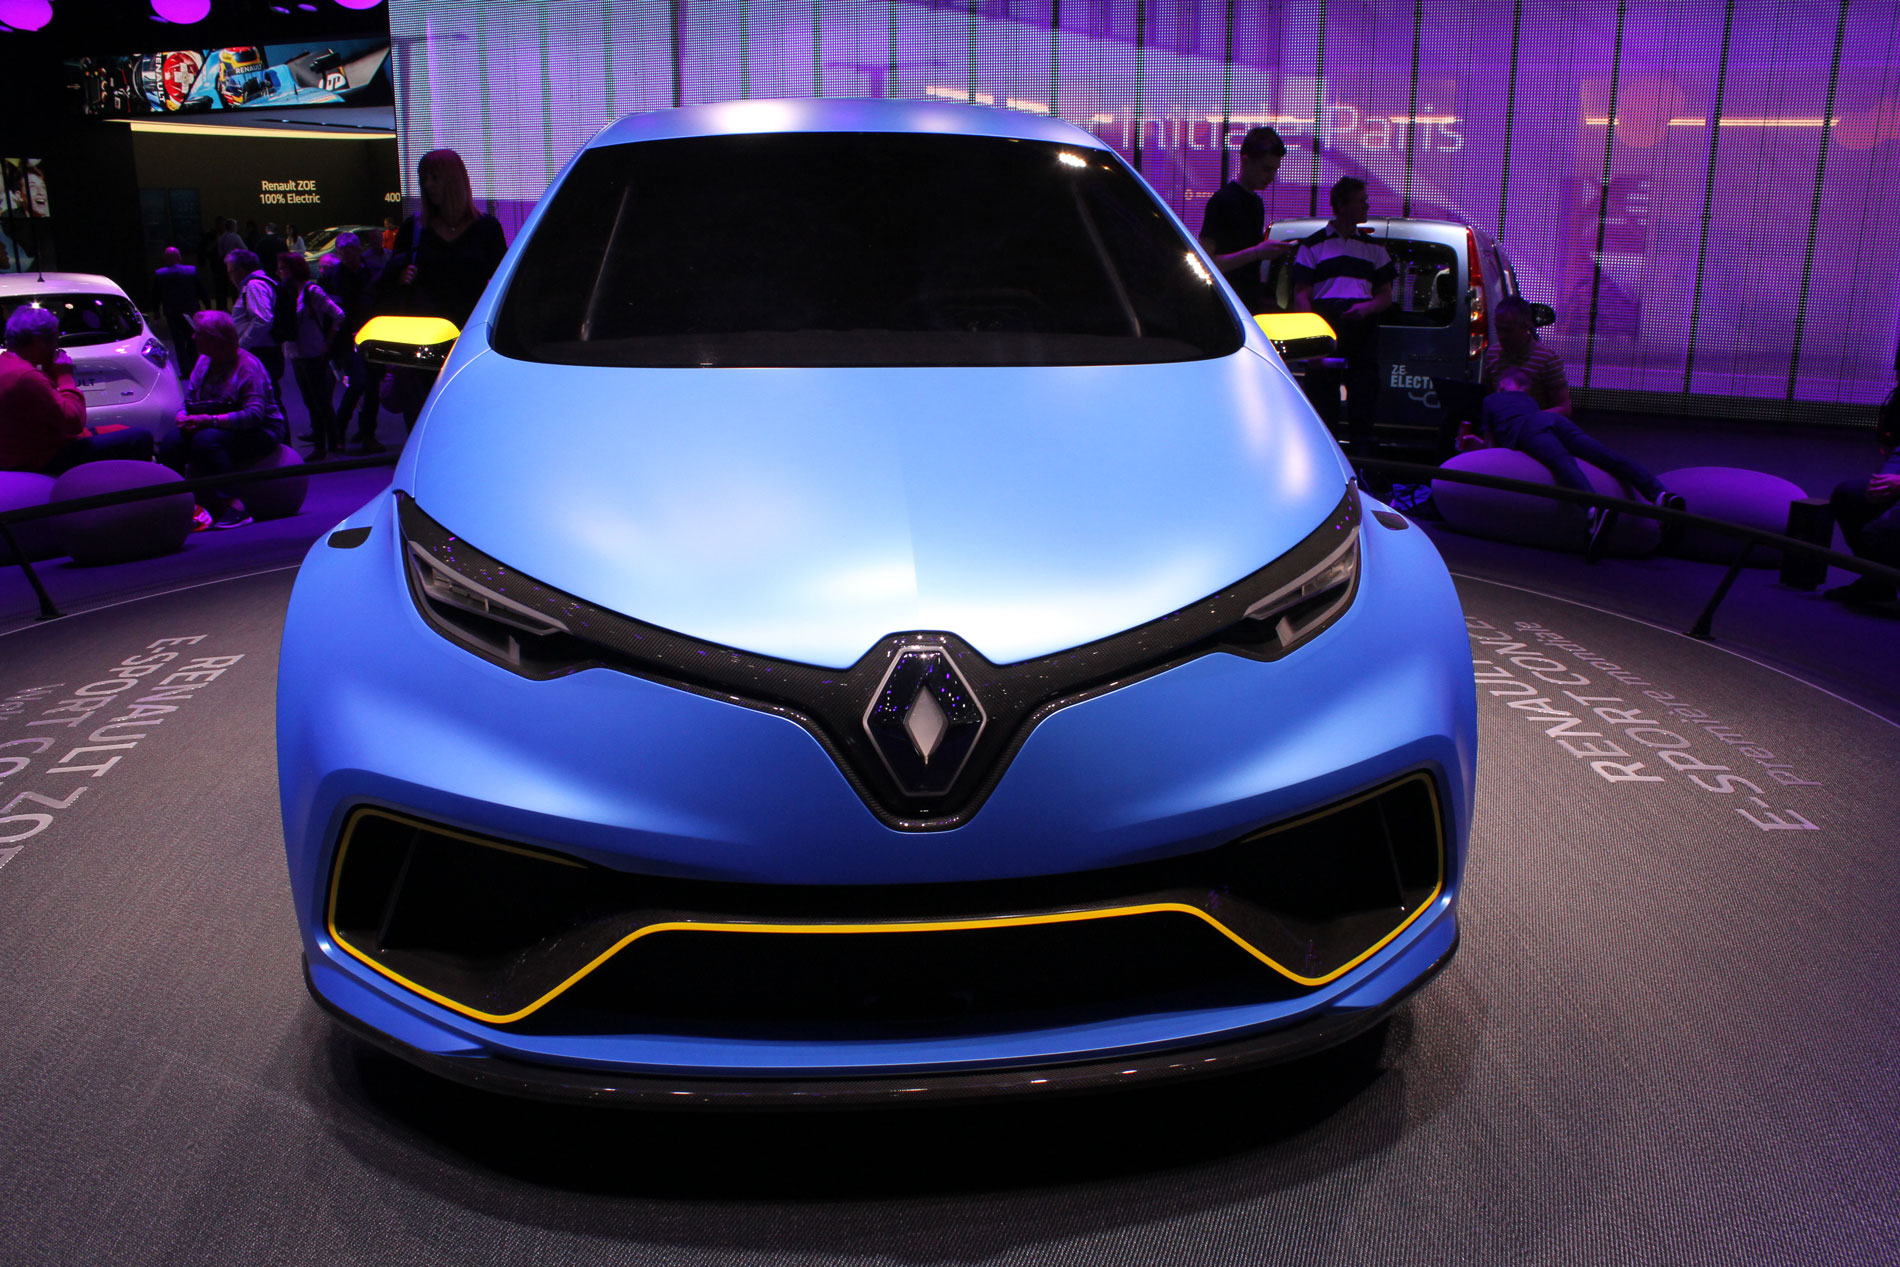 Visione frontale Renault Zoe 462 hp Ginevra